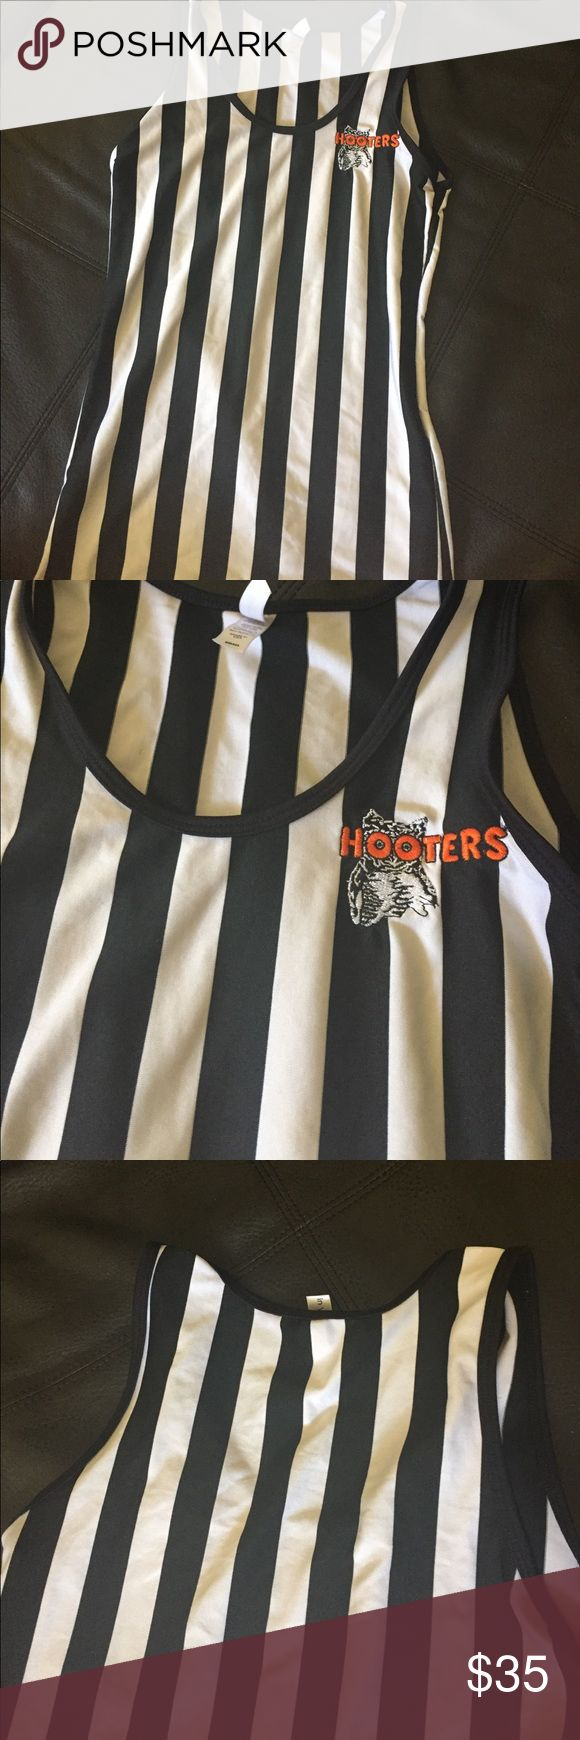 Hooters Referee Uniform Tank Top Stretchy racerback striped tank top. Hooters referee Uniform top features the original Hooters logo embroidered on the left hand side. Tank is very stretchy and can fit S-L. Size Small Hooters Tops Tank Tops